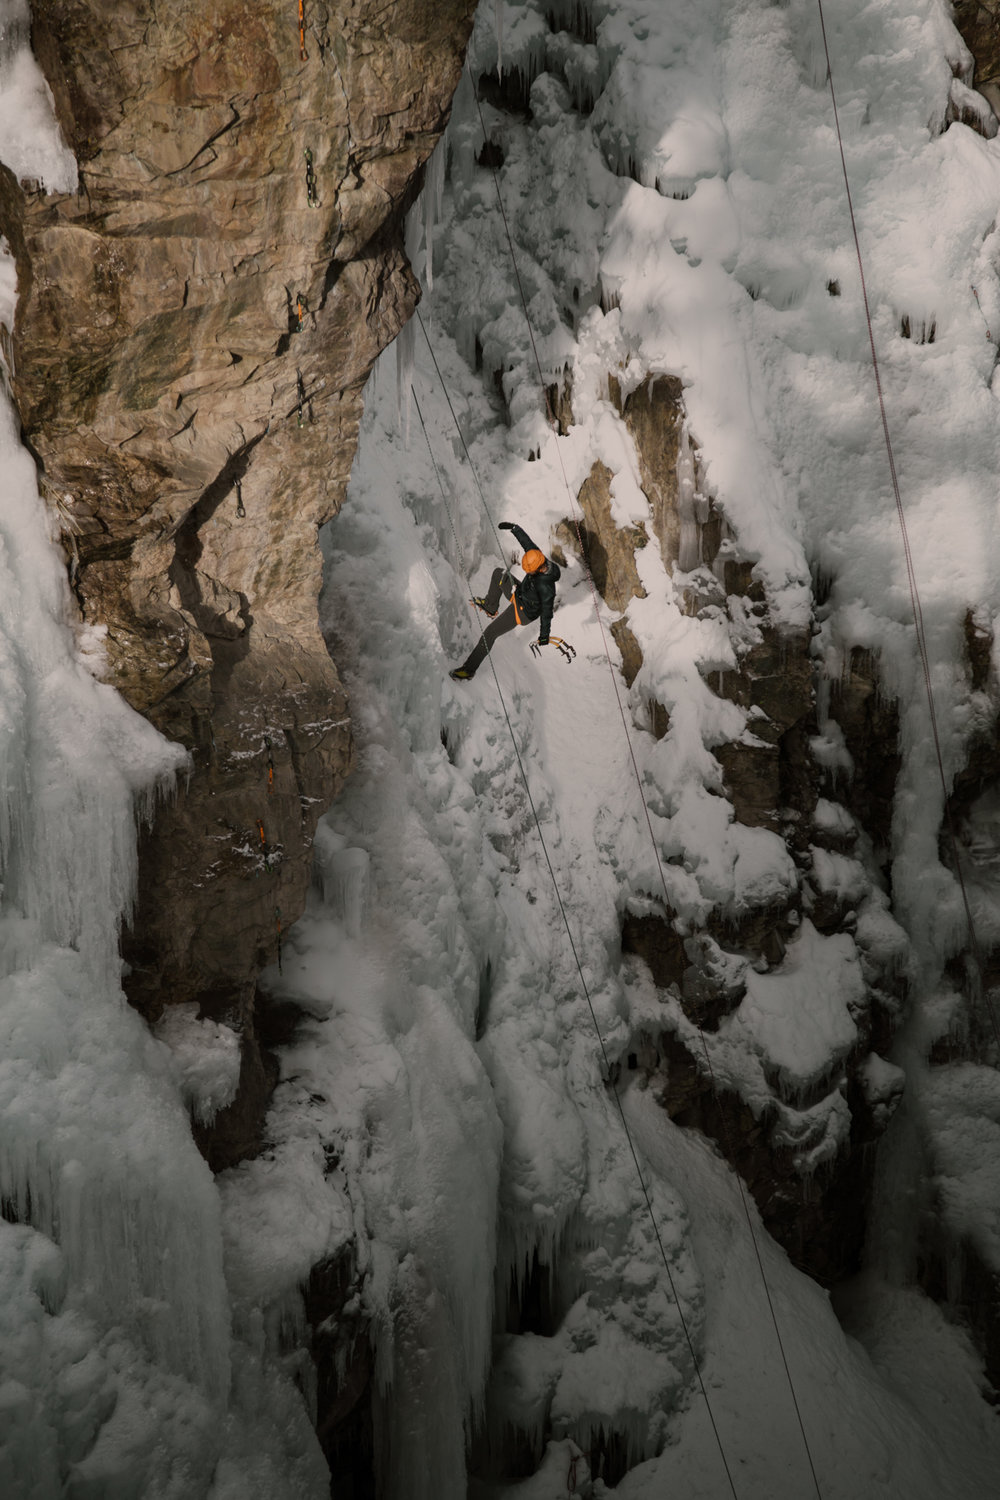 ouray_colorado_ice_climbing_festival-25.jpg